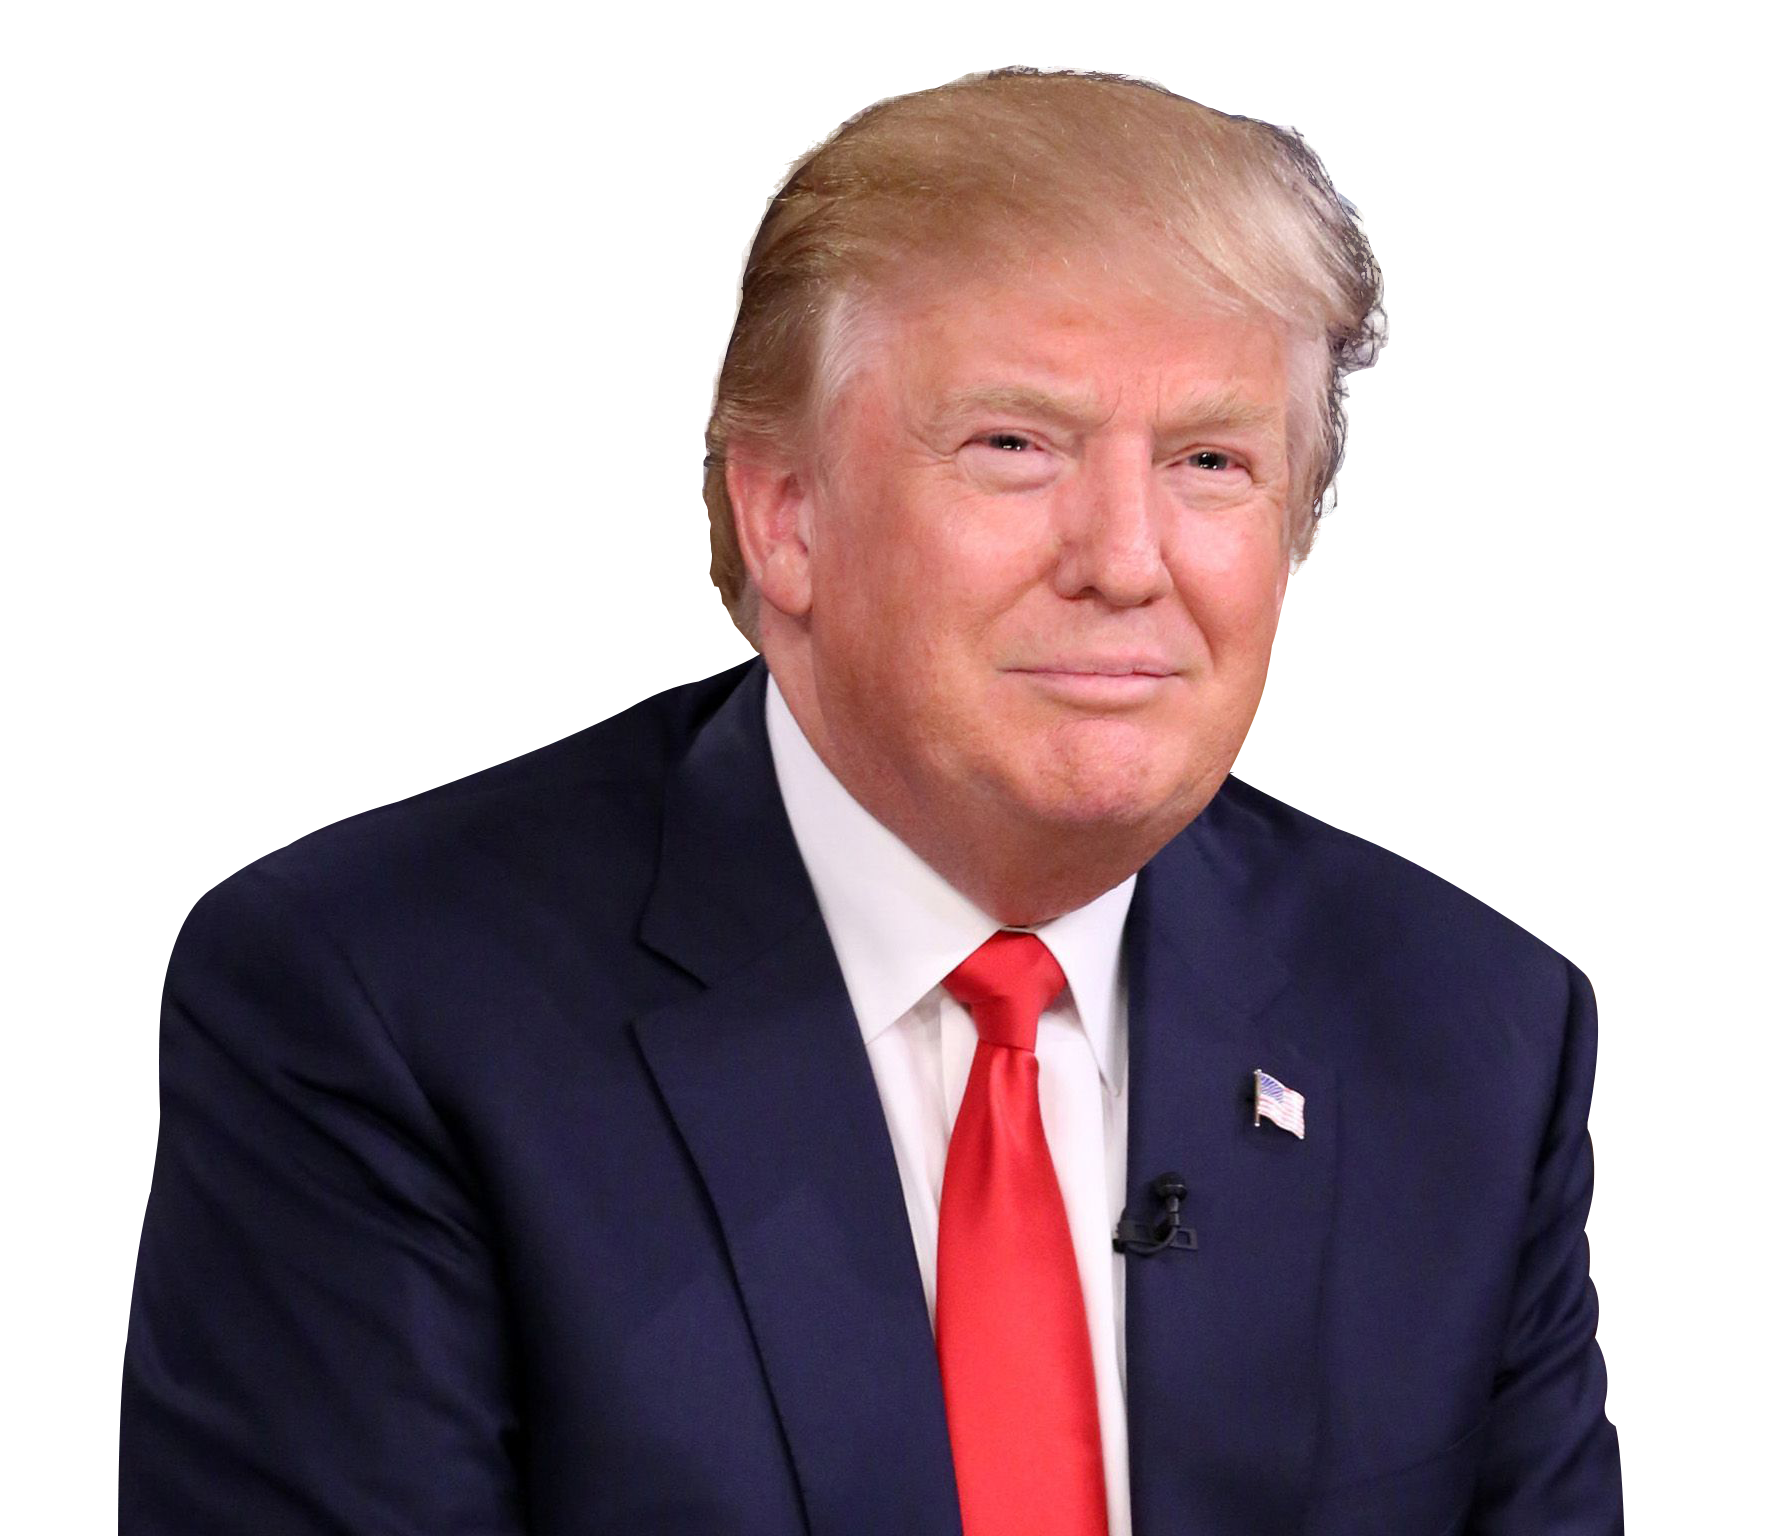 Businessman images pngpix donald. Trump png clipart black and white library